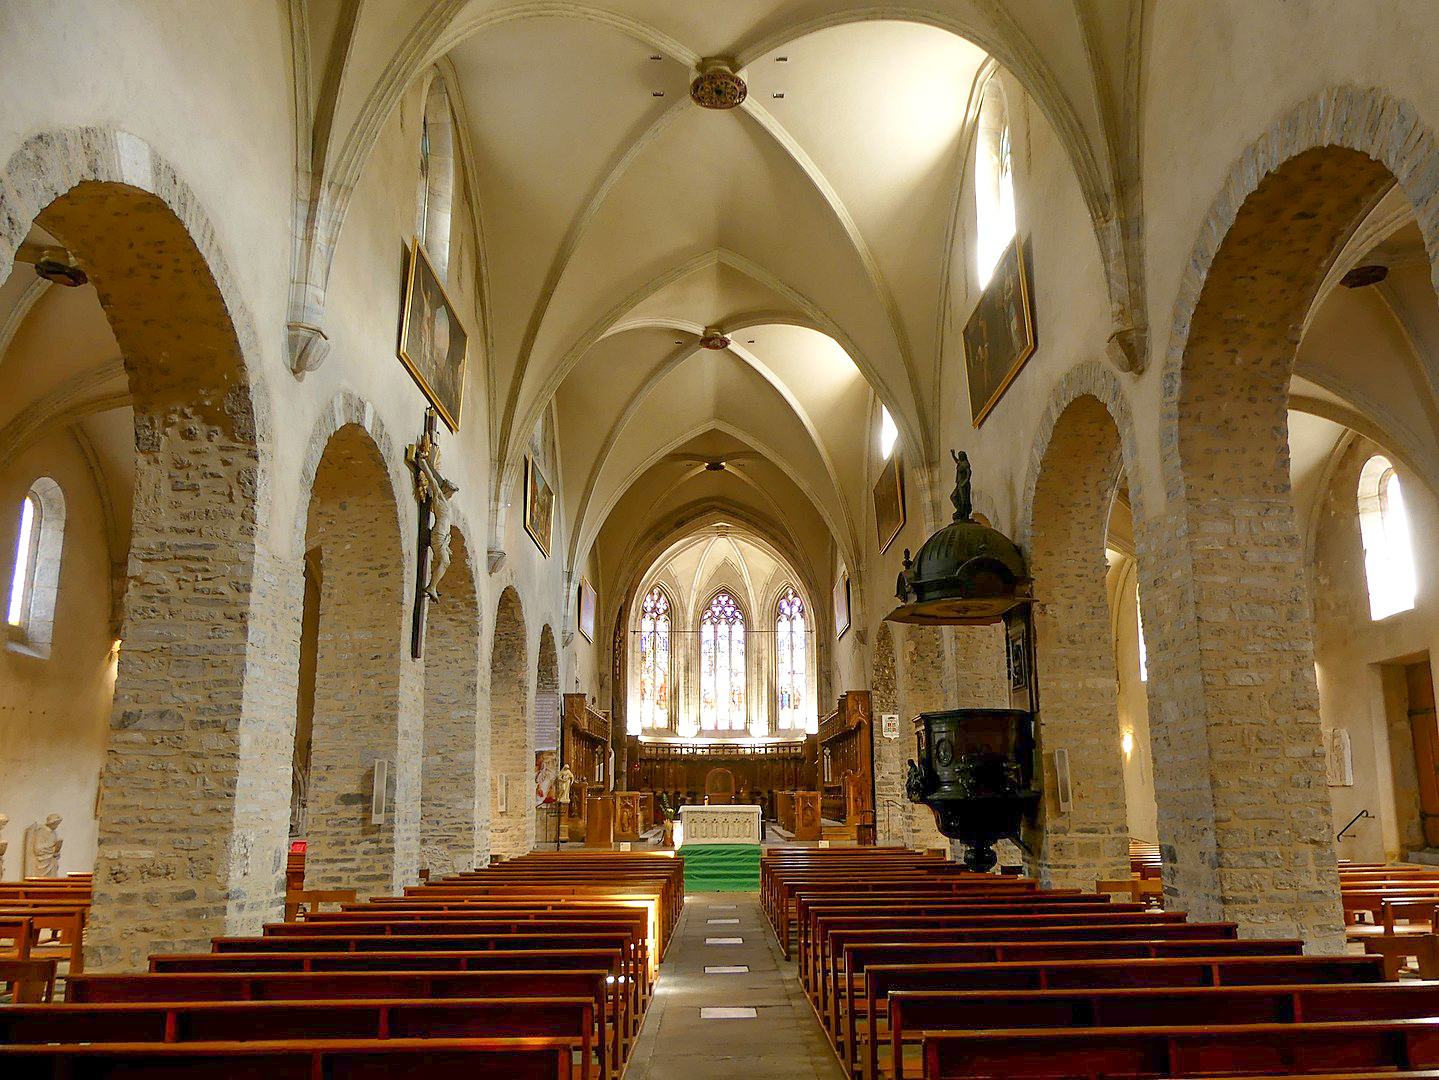 The nave of the cathedral of Saint-Jean-de-Maurienne © Florian Pépellin - license [CC BY-SA 4.0] from Wikimedia Commons